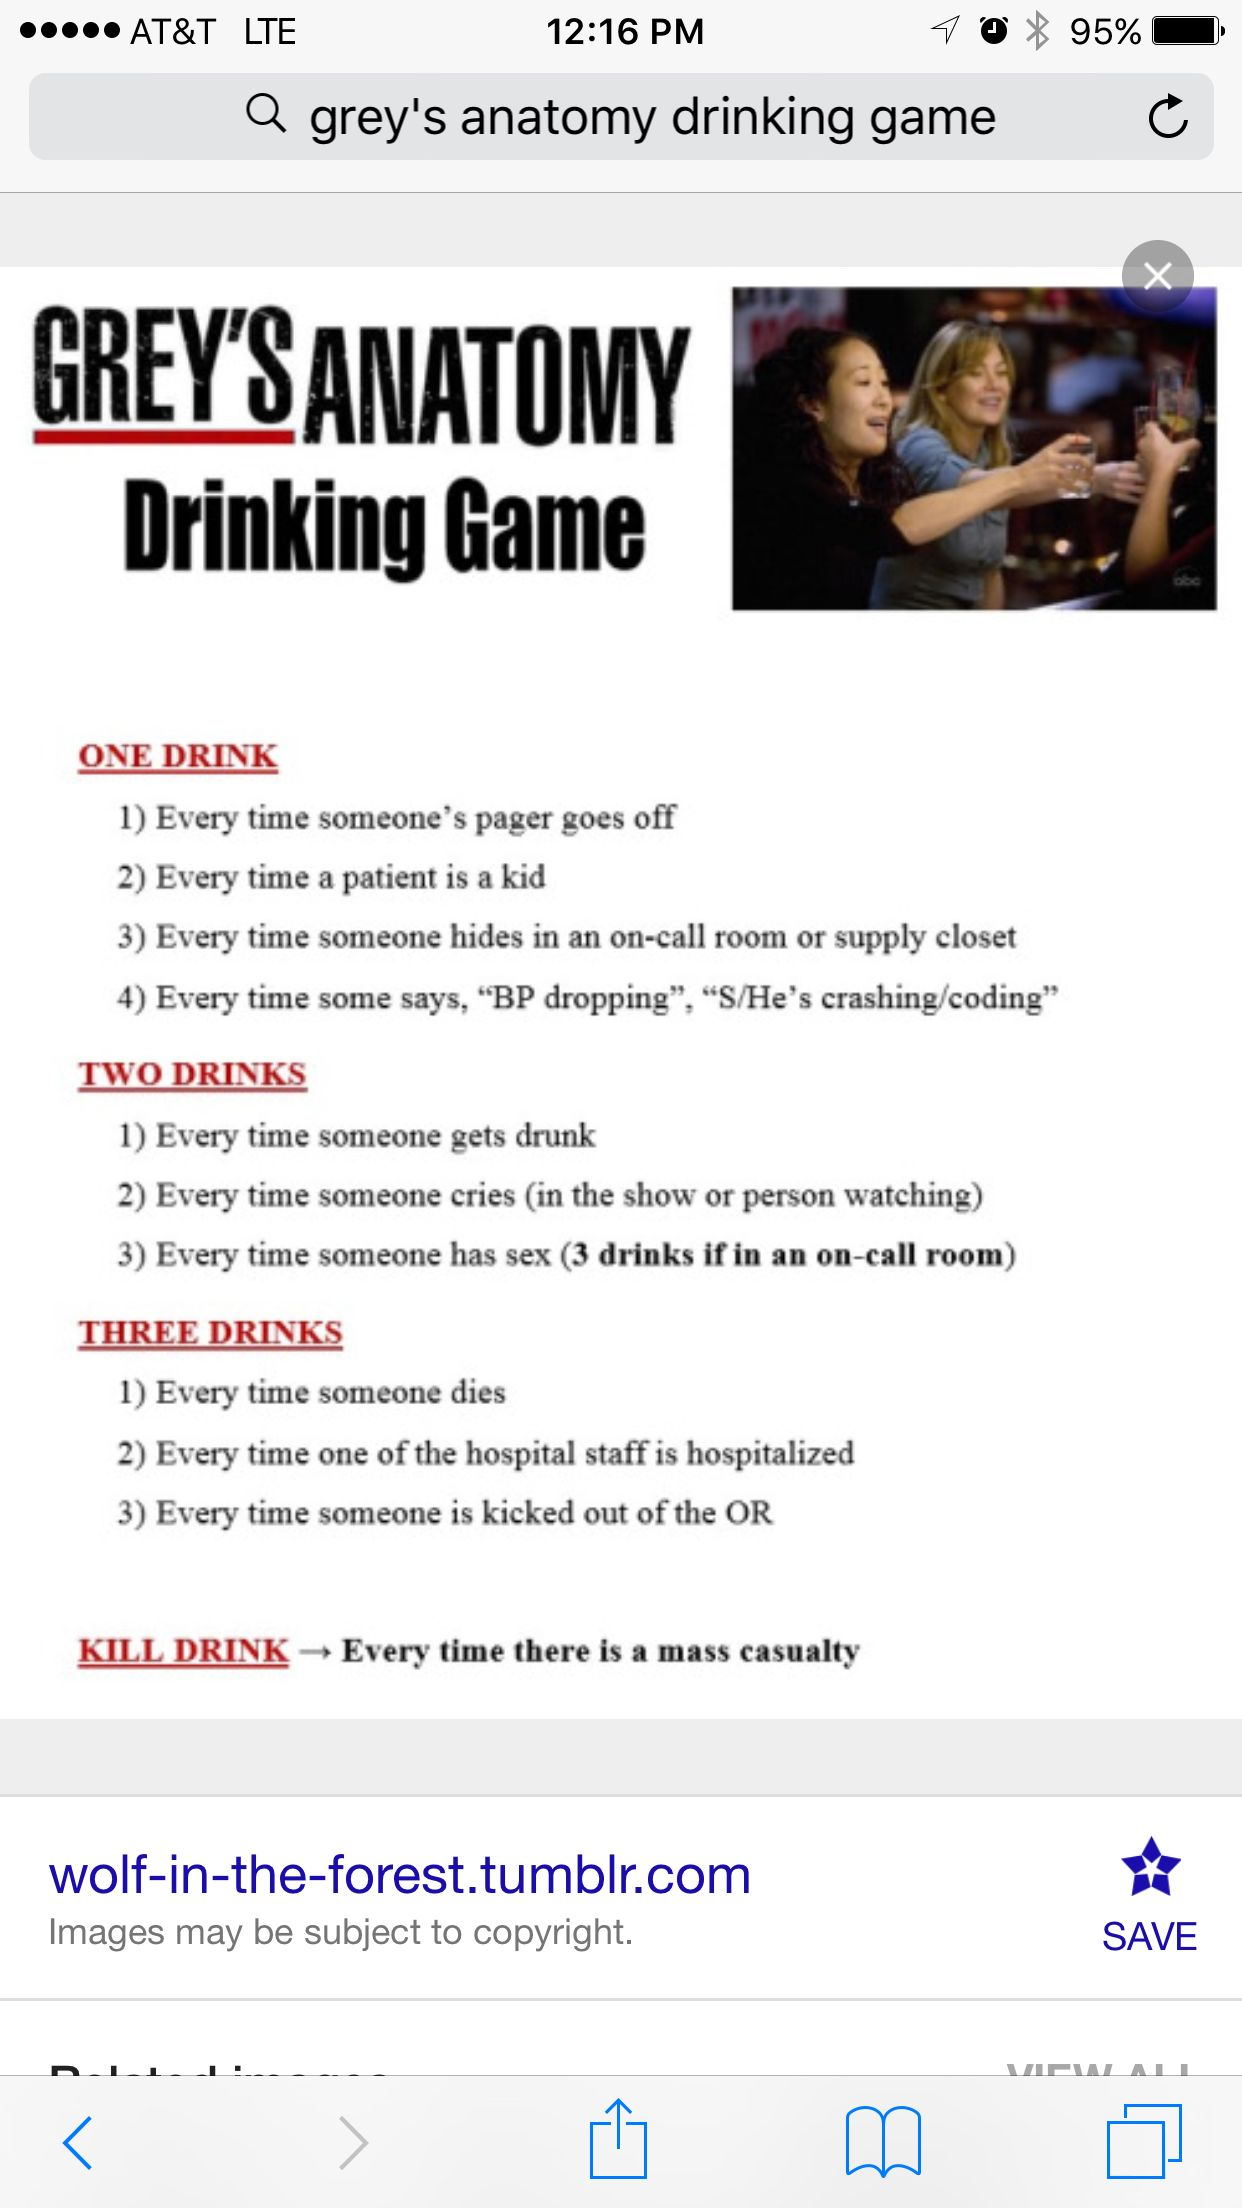 Greys anatomy drinking game | Drinking games | Pinterest ...